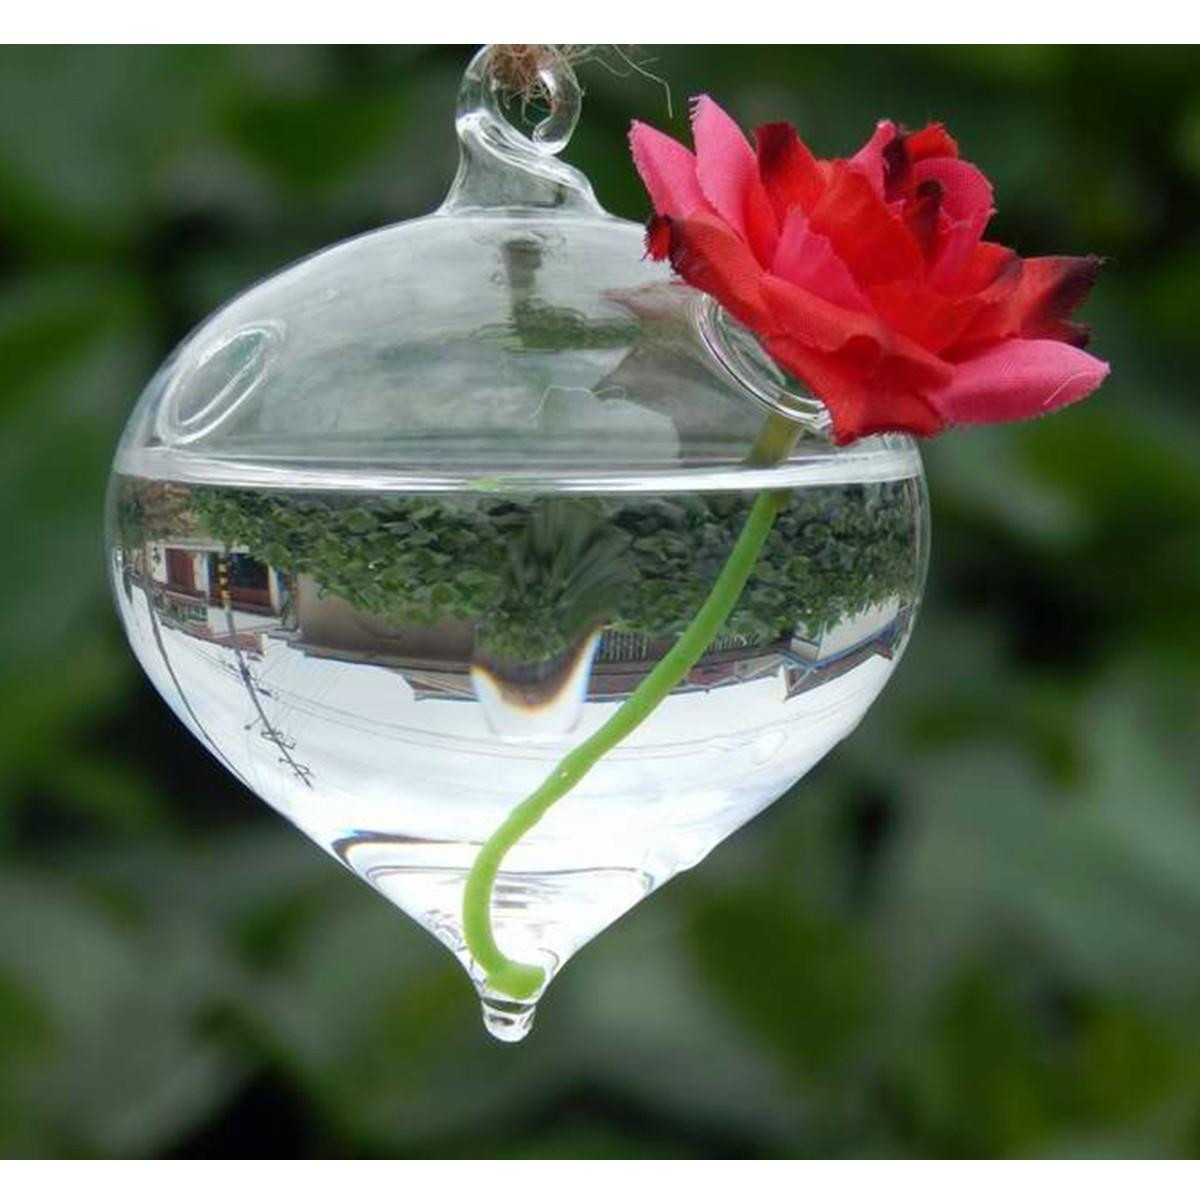 Mexican Vases for Sale Of Hot Sale Clear Onion Hanging Glass Flower Plant Vase Hydroponic Throughout Hot Sale Clear Onion Hanging Glass Flower Plant Vase Hydroponic Container Pot Home Decoration Party Transparent Beauty Home Decor Floor Vases Home Decor